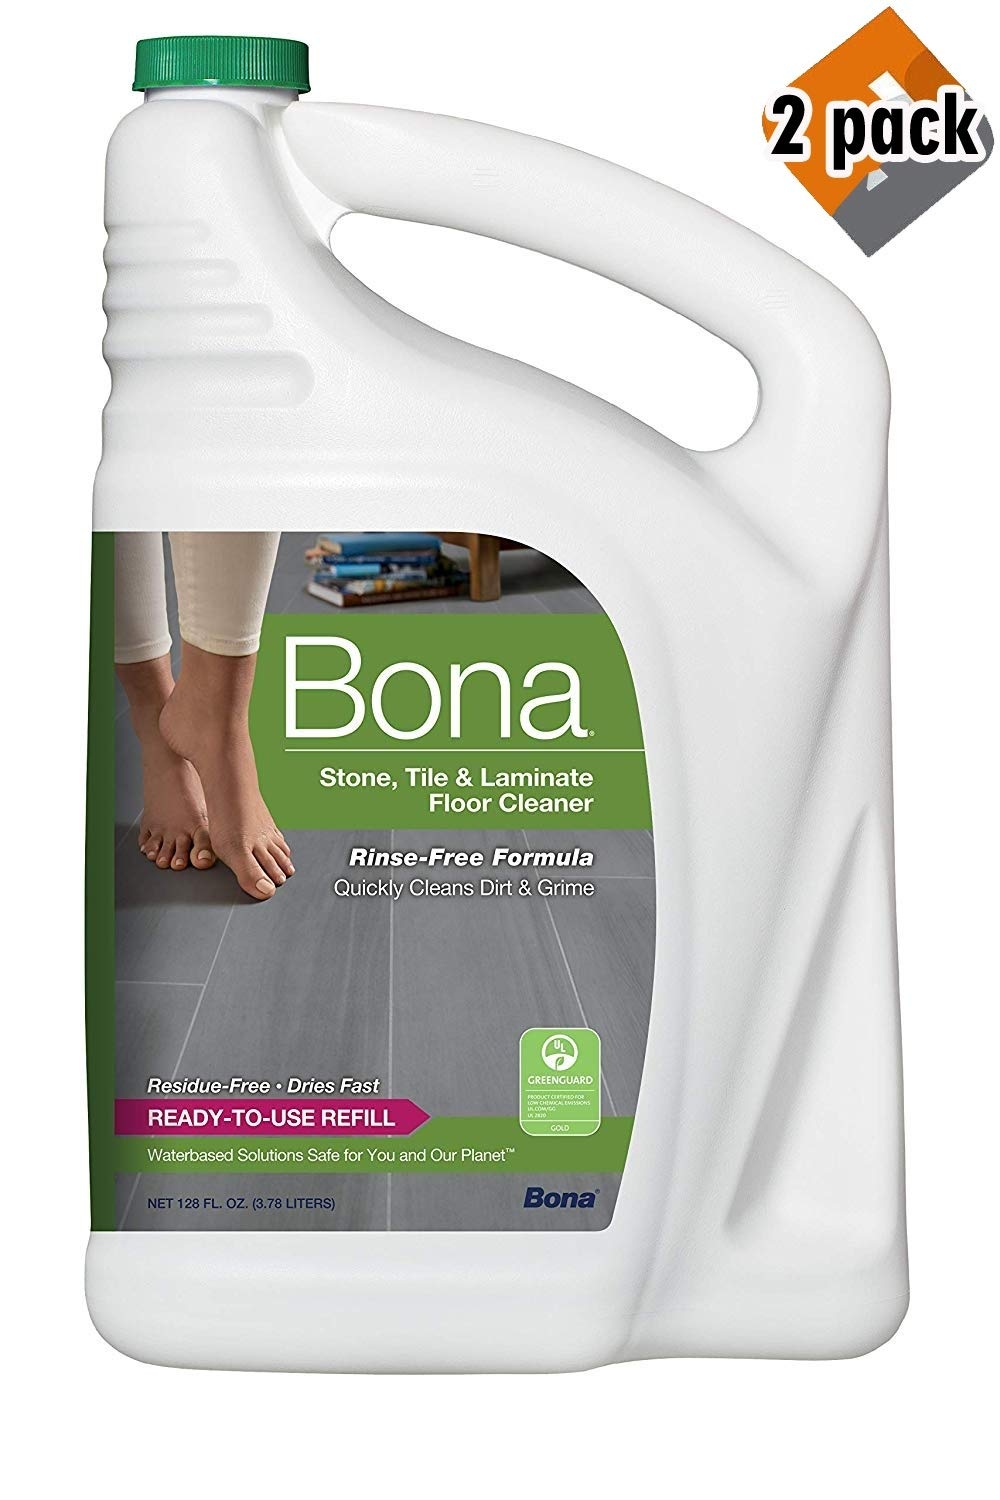 Bona Stone, Tile & Laminate Floor Cleaner Refill, 128 oz, 2 Pack